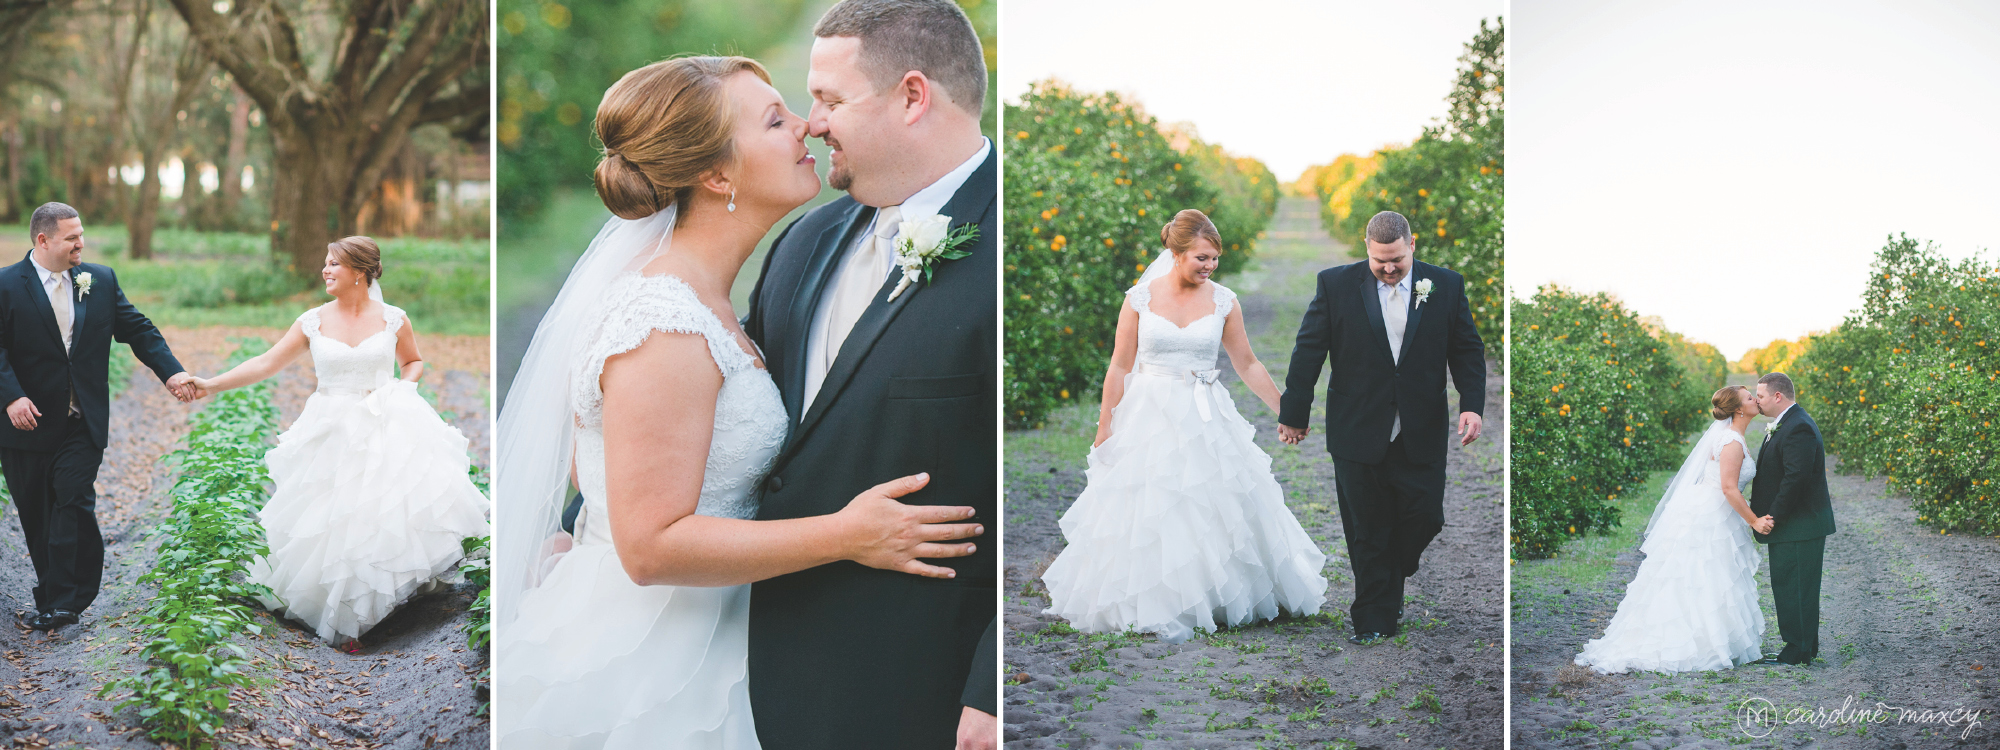 Emma & Eric's Lake Placid, Florida wedding with Caroline Maxcy Photography.